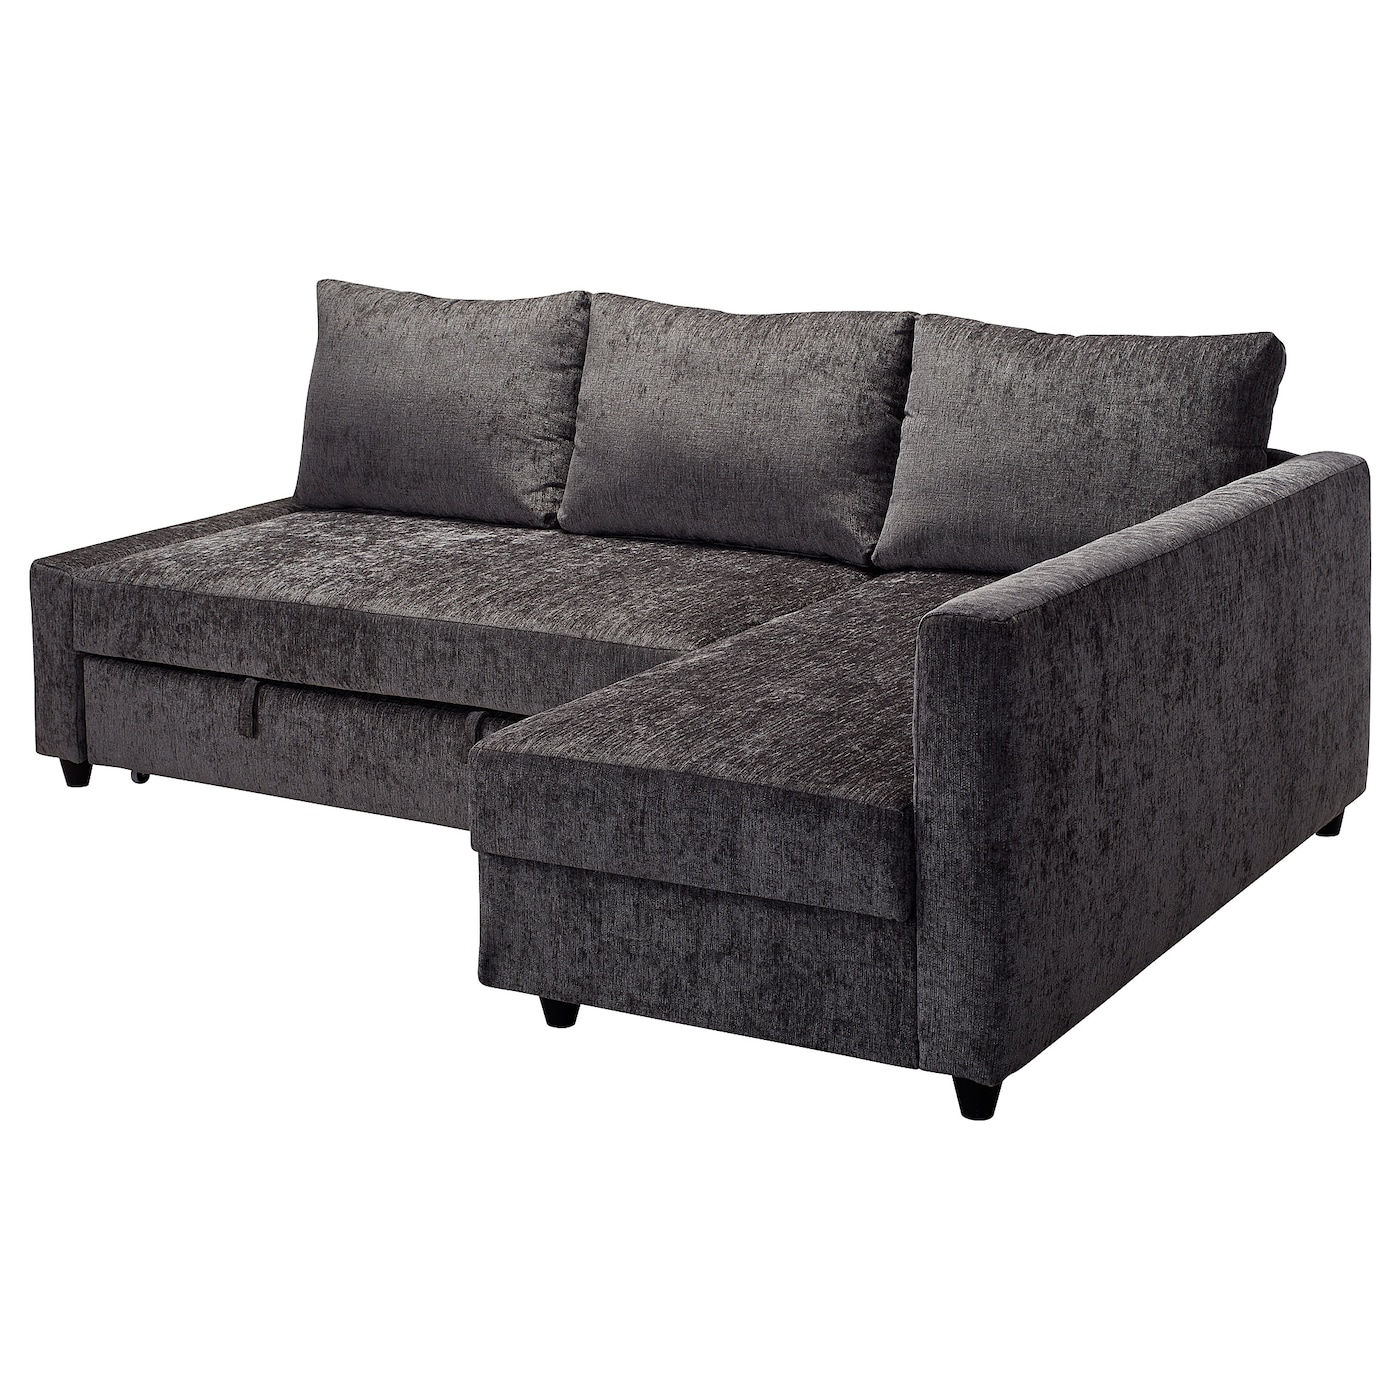 friheten corner sofa bed with storage dark grey ikea. Black Bedroom Furniture Sets. Home Design Ideas